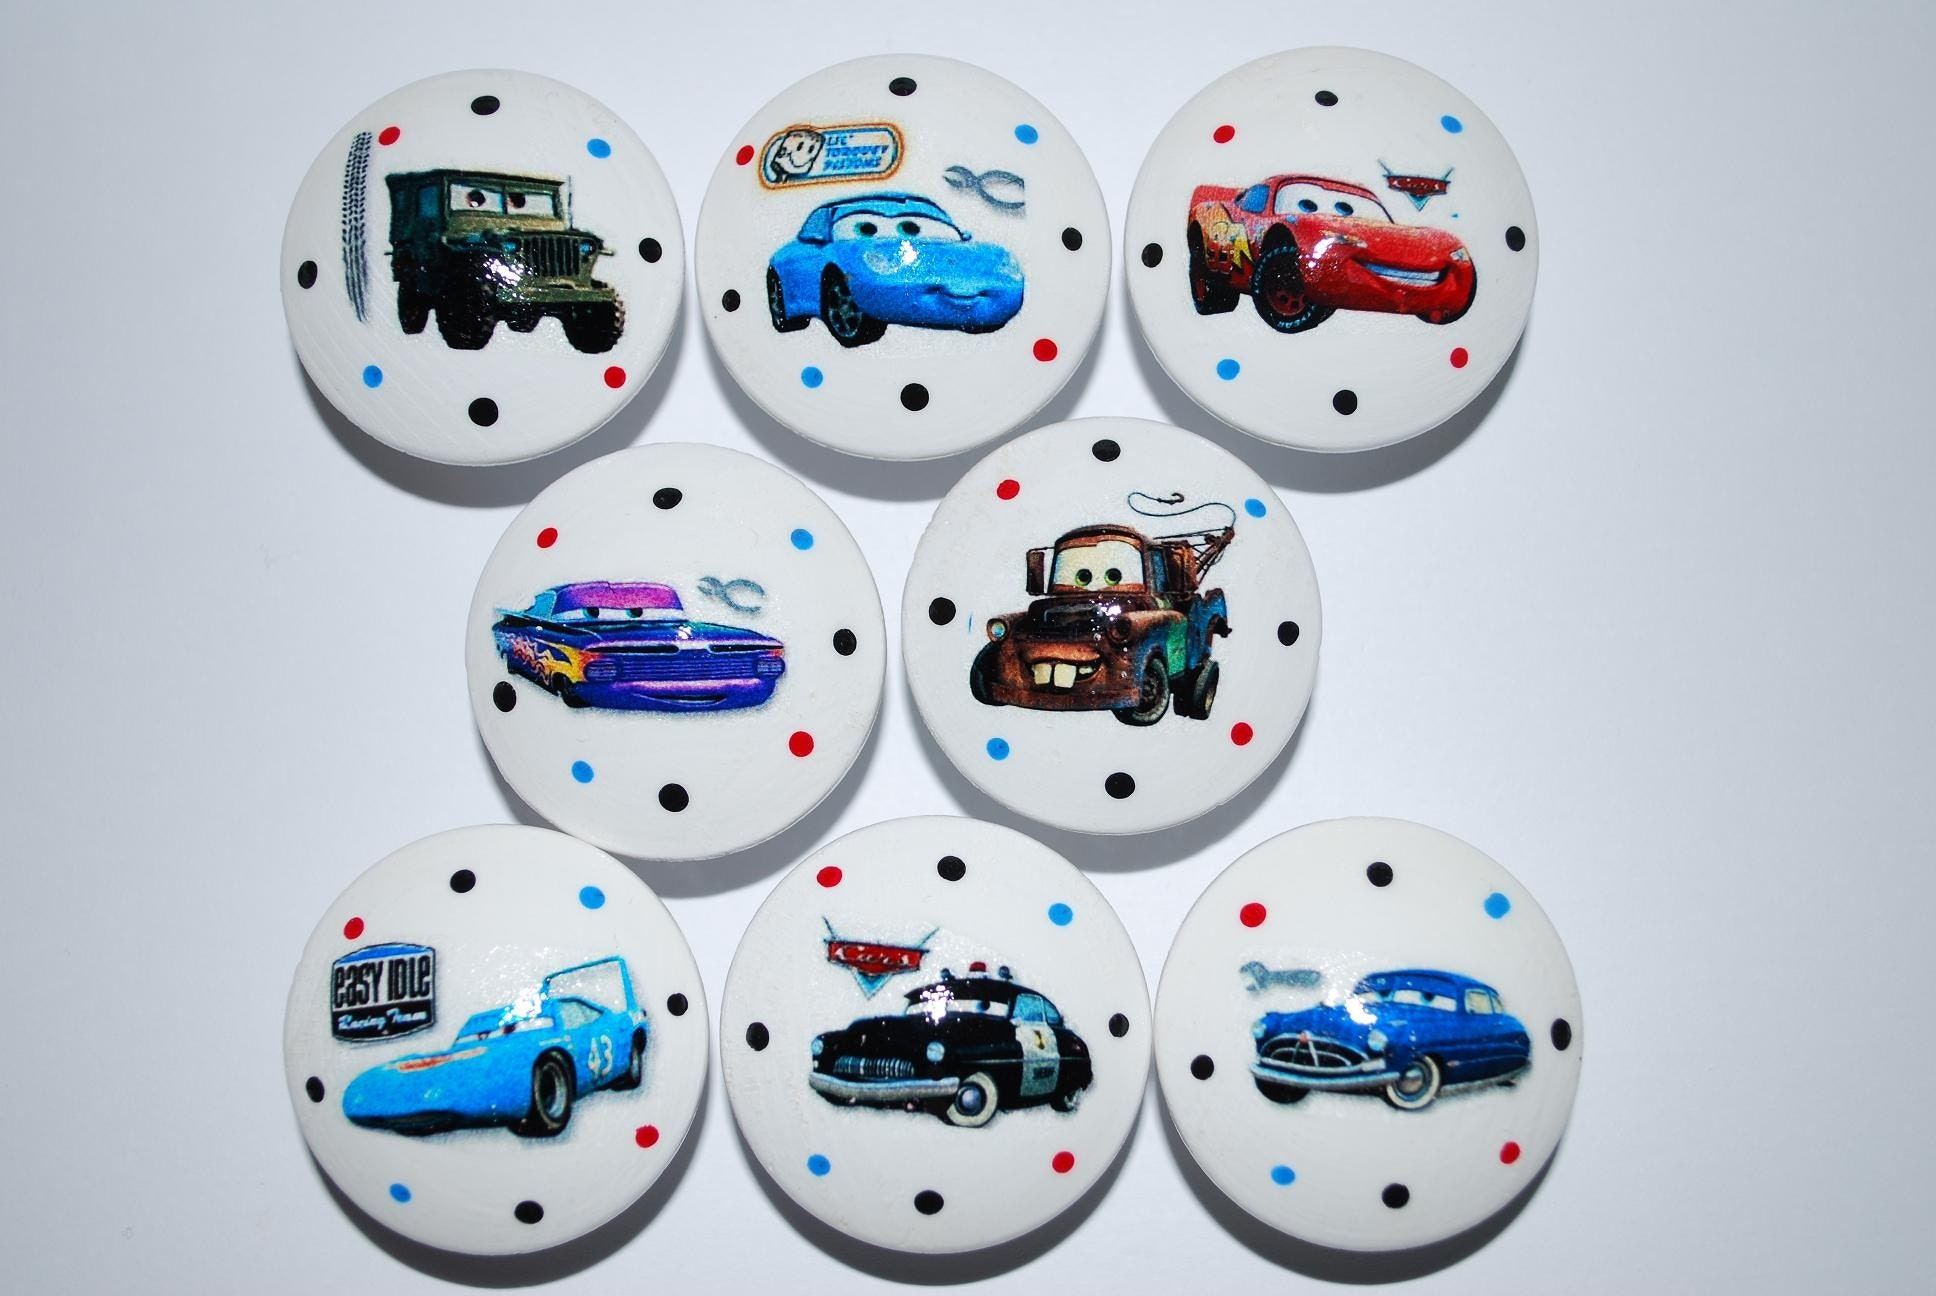 Disney Pixar Cars Knobs Kids Dresser Drawer Pulls So Cute